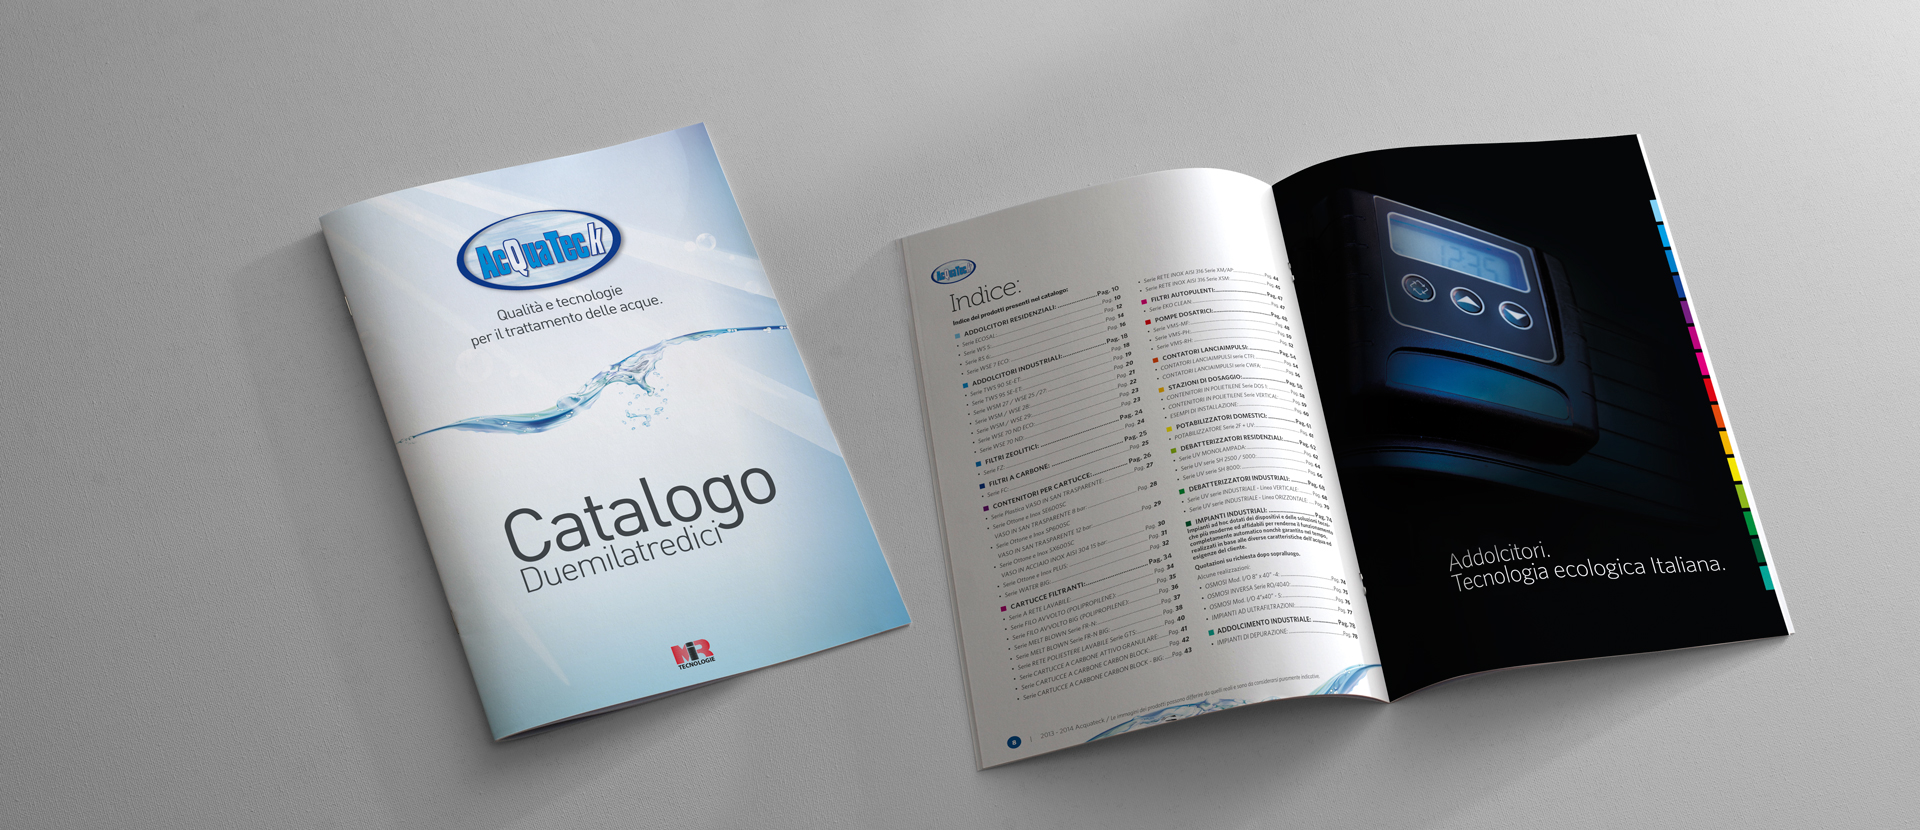 catalogo acquateck di mir paolo moretti graphic design